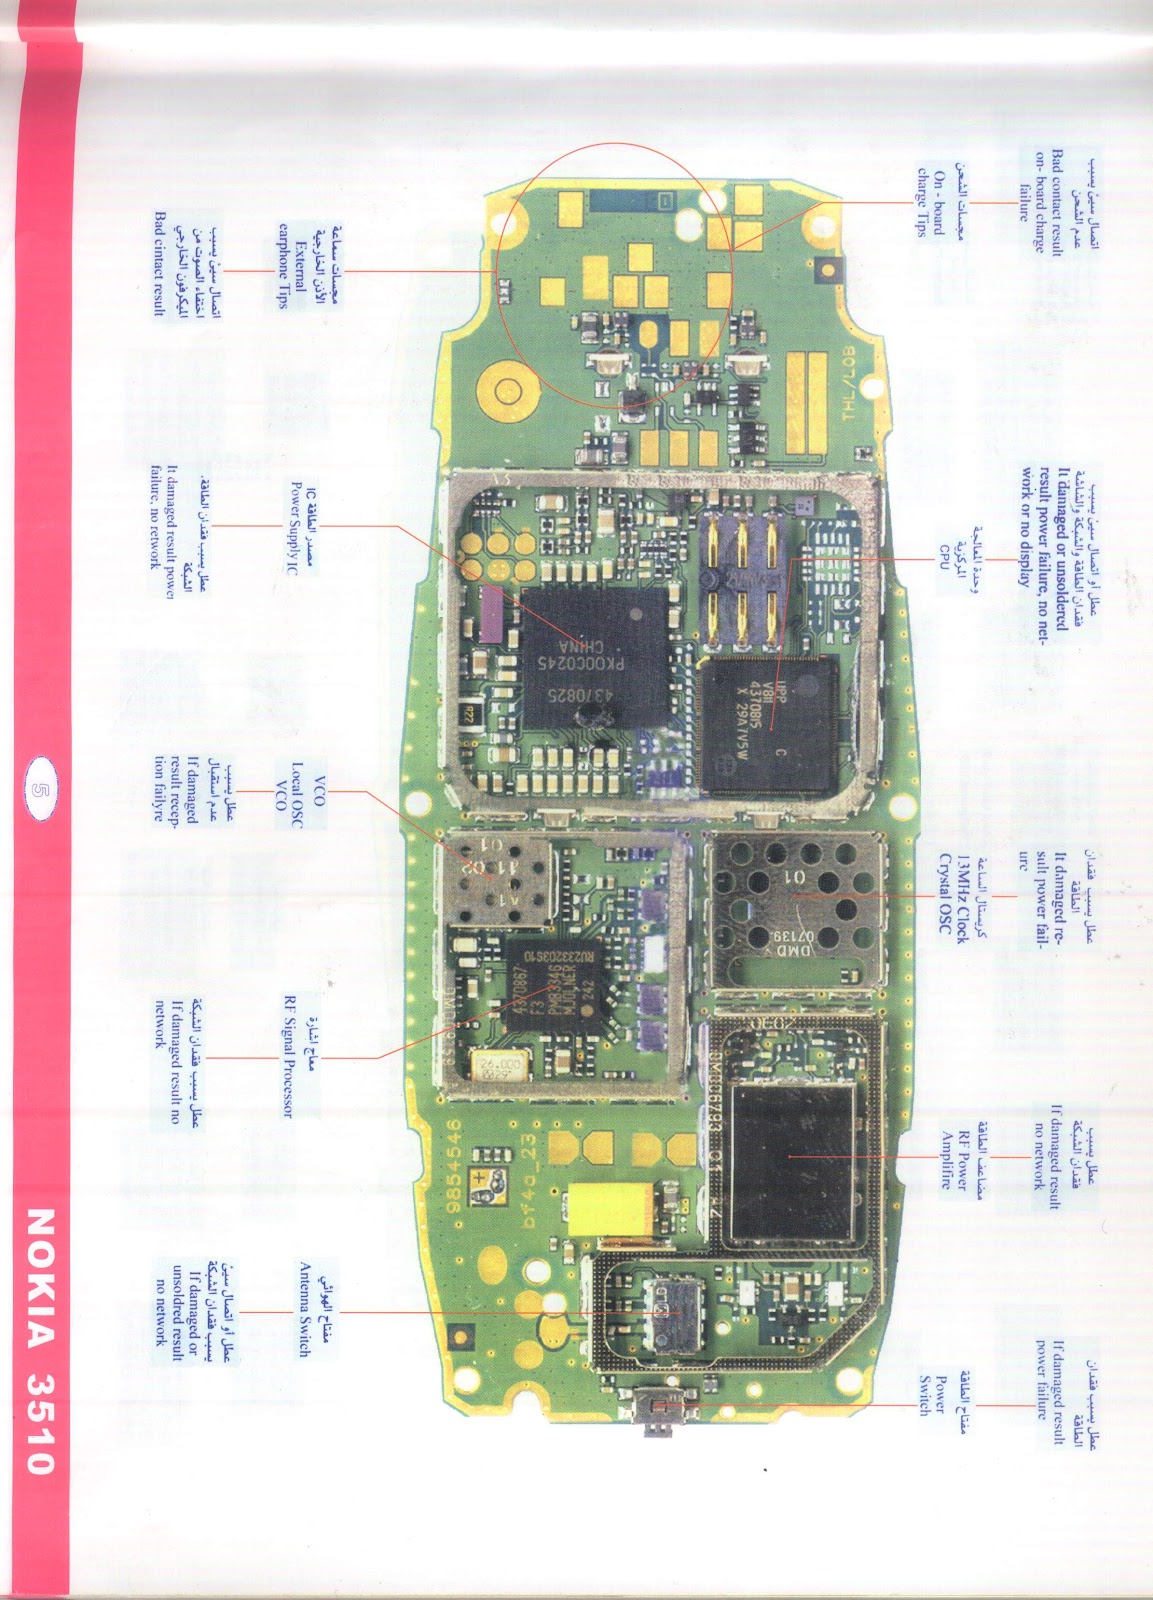 Mobile Blog Nokia 3510 Circuit Board Details